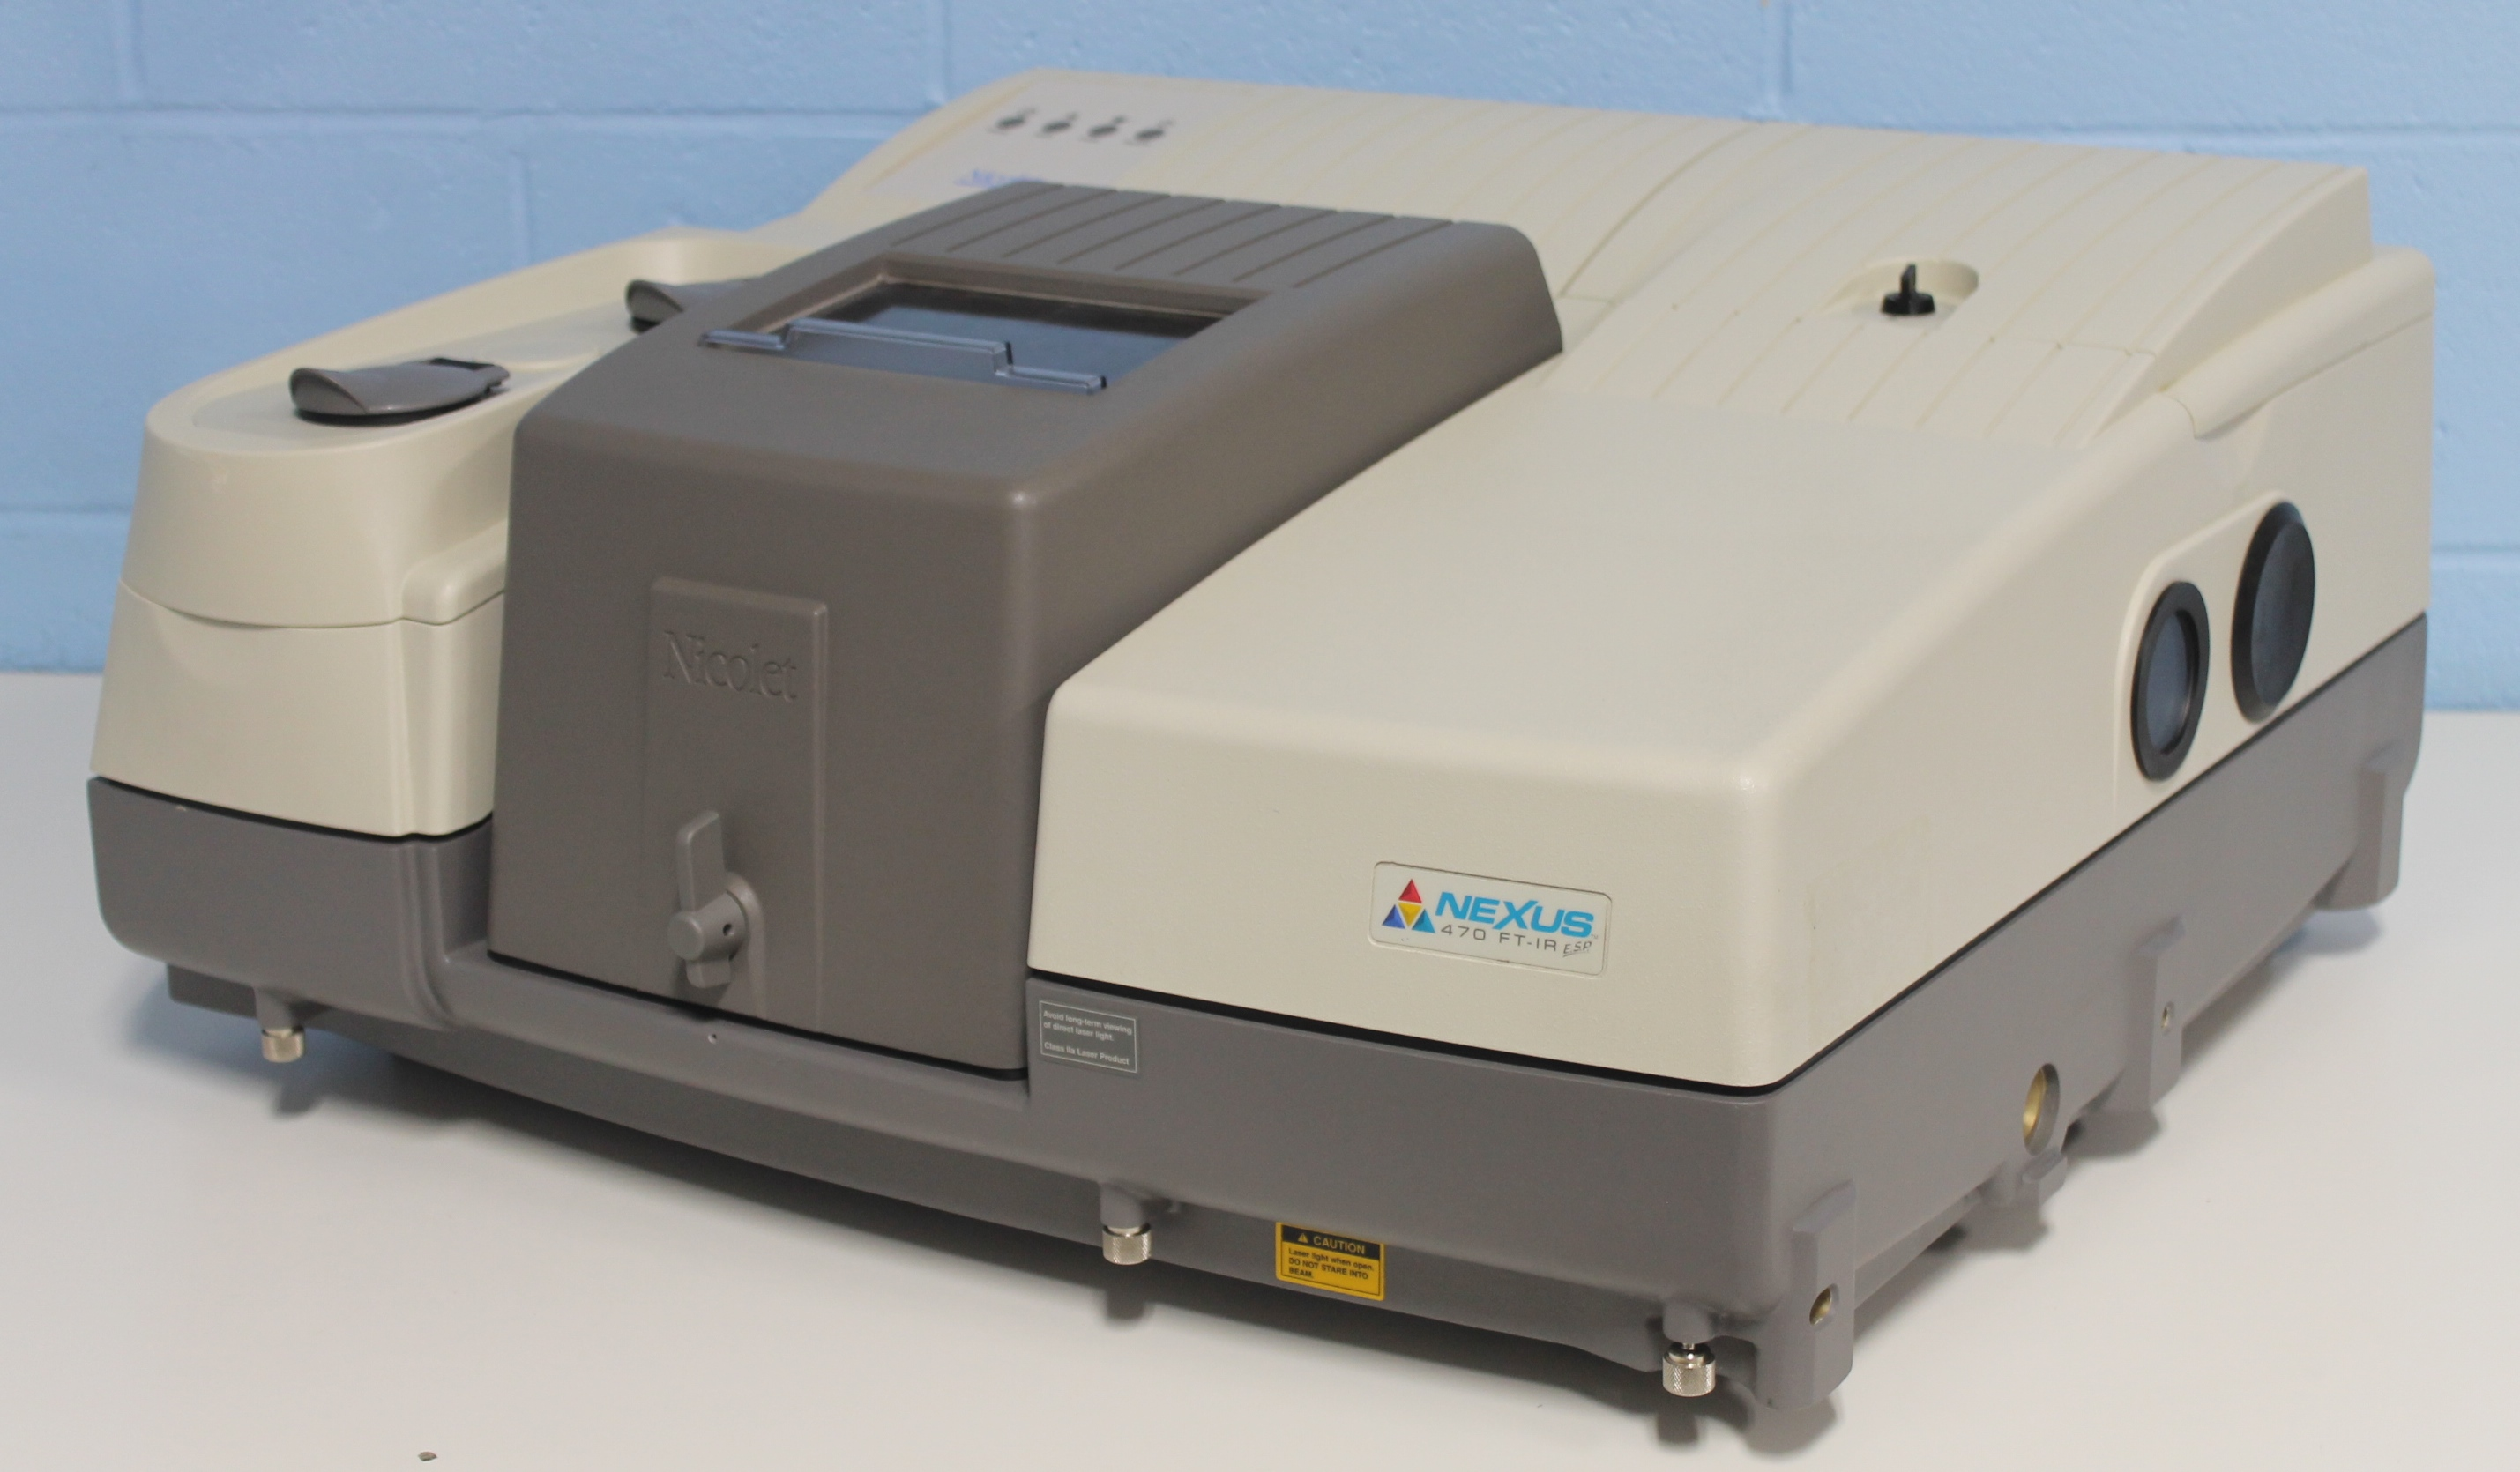 Refurbished Nicolet Nexus 470 Esp Ft Ir Spectrometer With